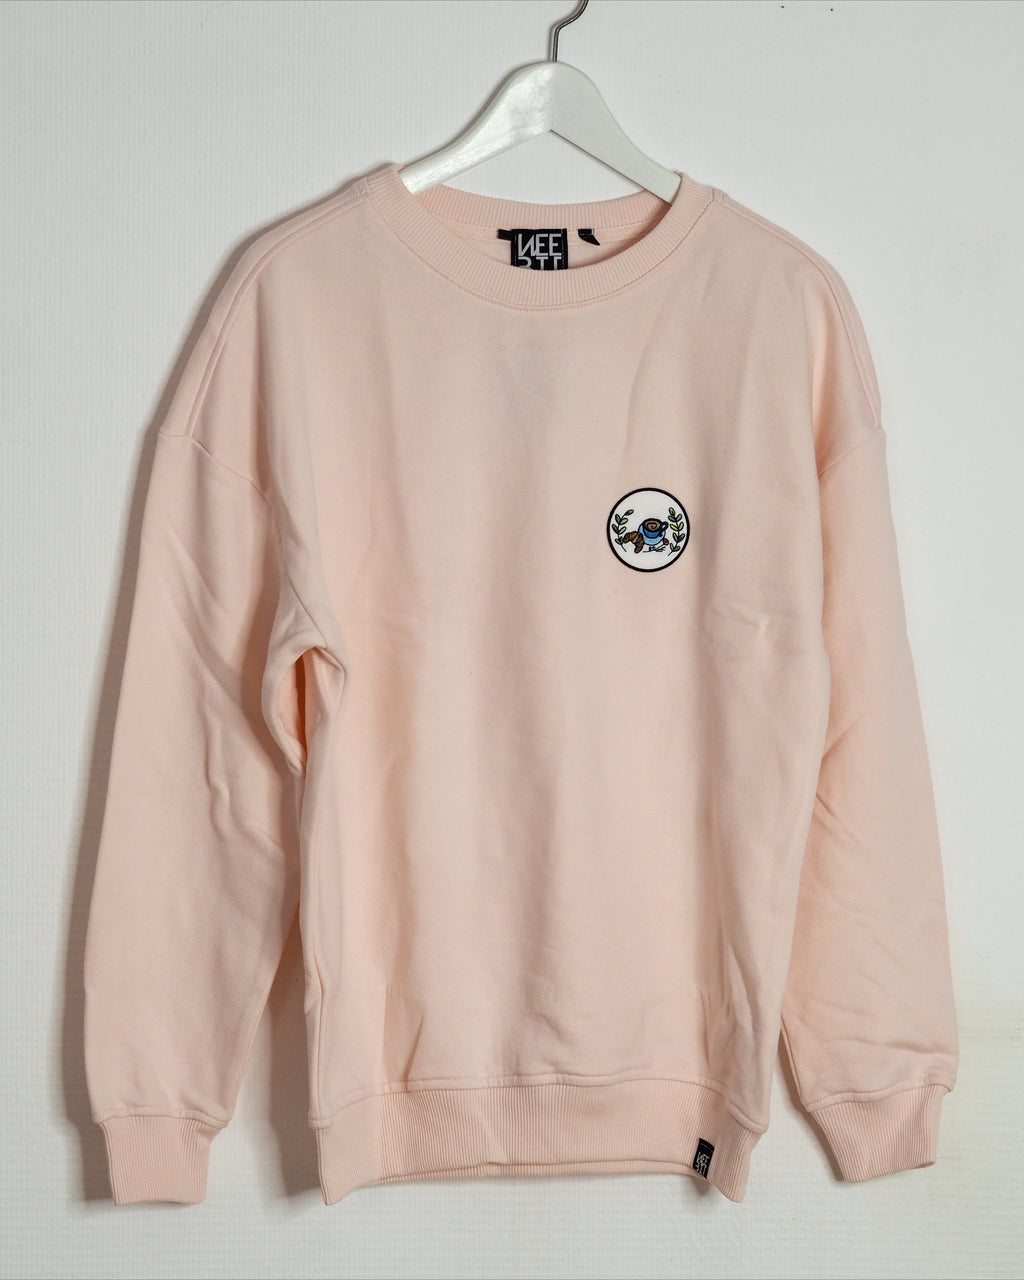 OUTLET / ROSA OVERSIZE SWEATER COFFEE & CROISSANT PATCH